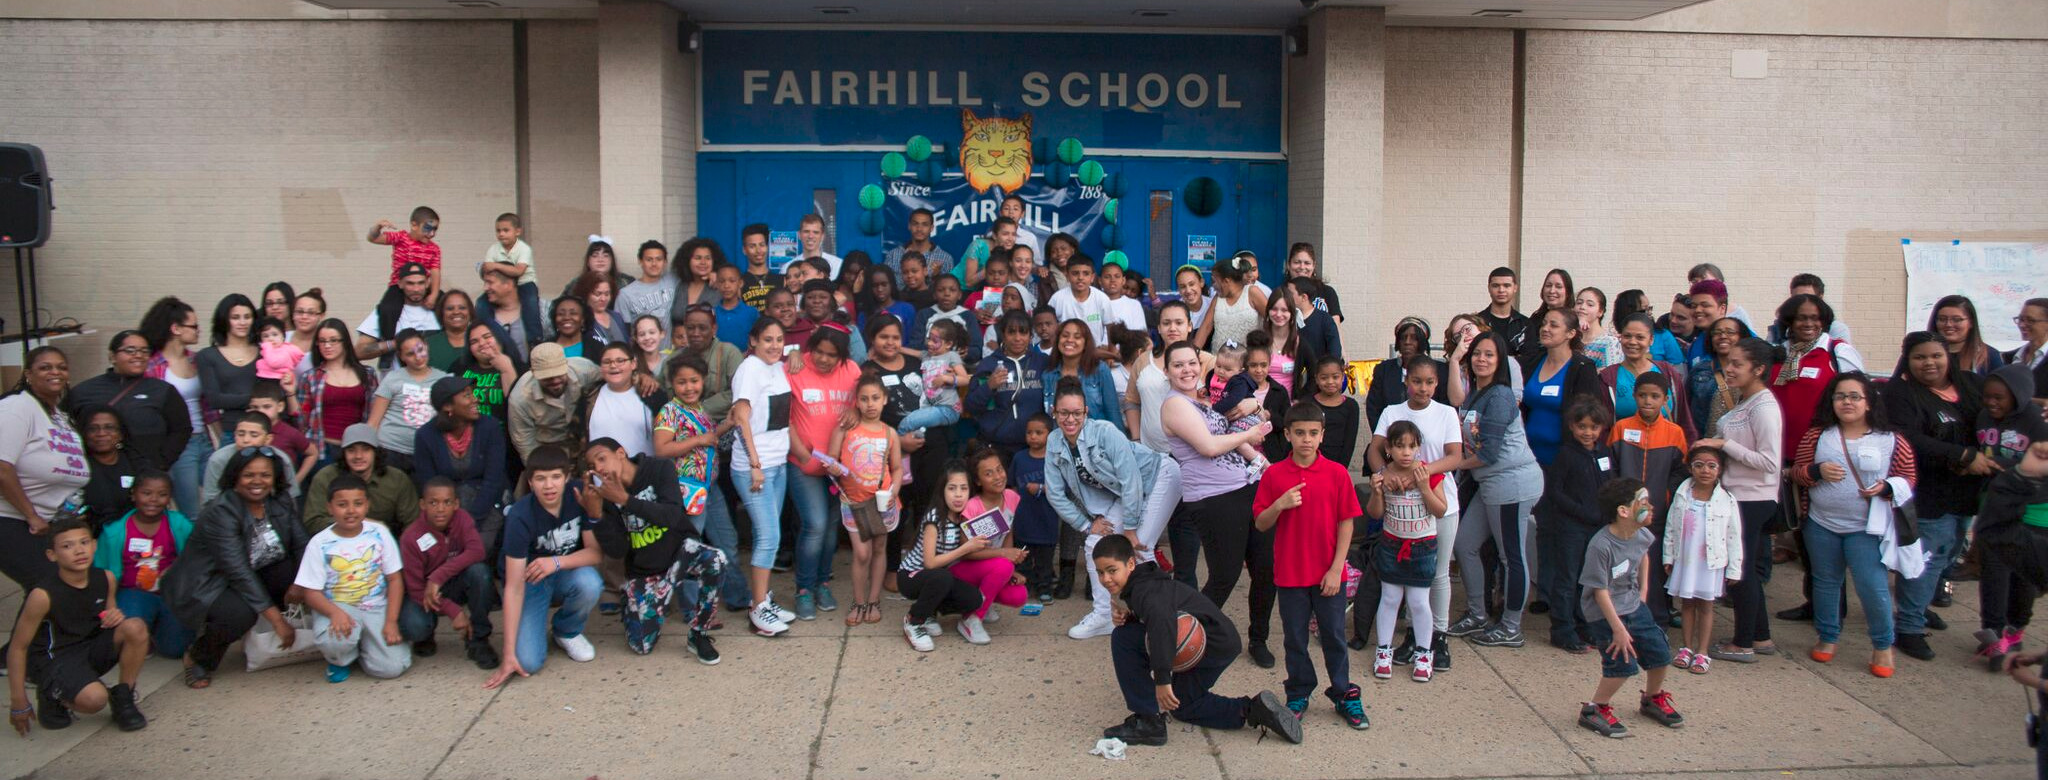 reForm Fun Day at Fairhill, May 1st, 2015. Photo by Tony Rocco.